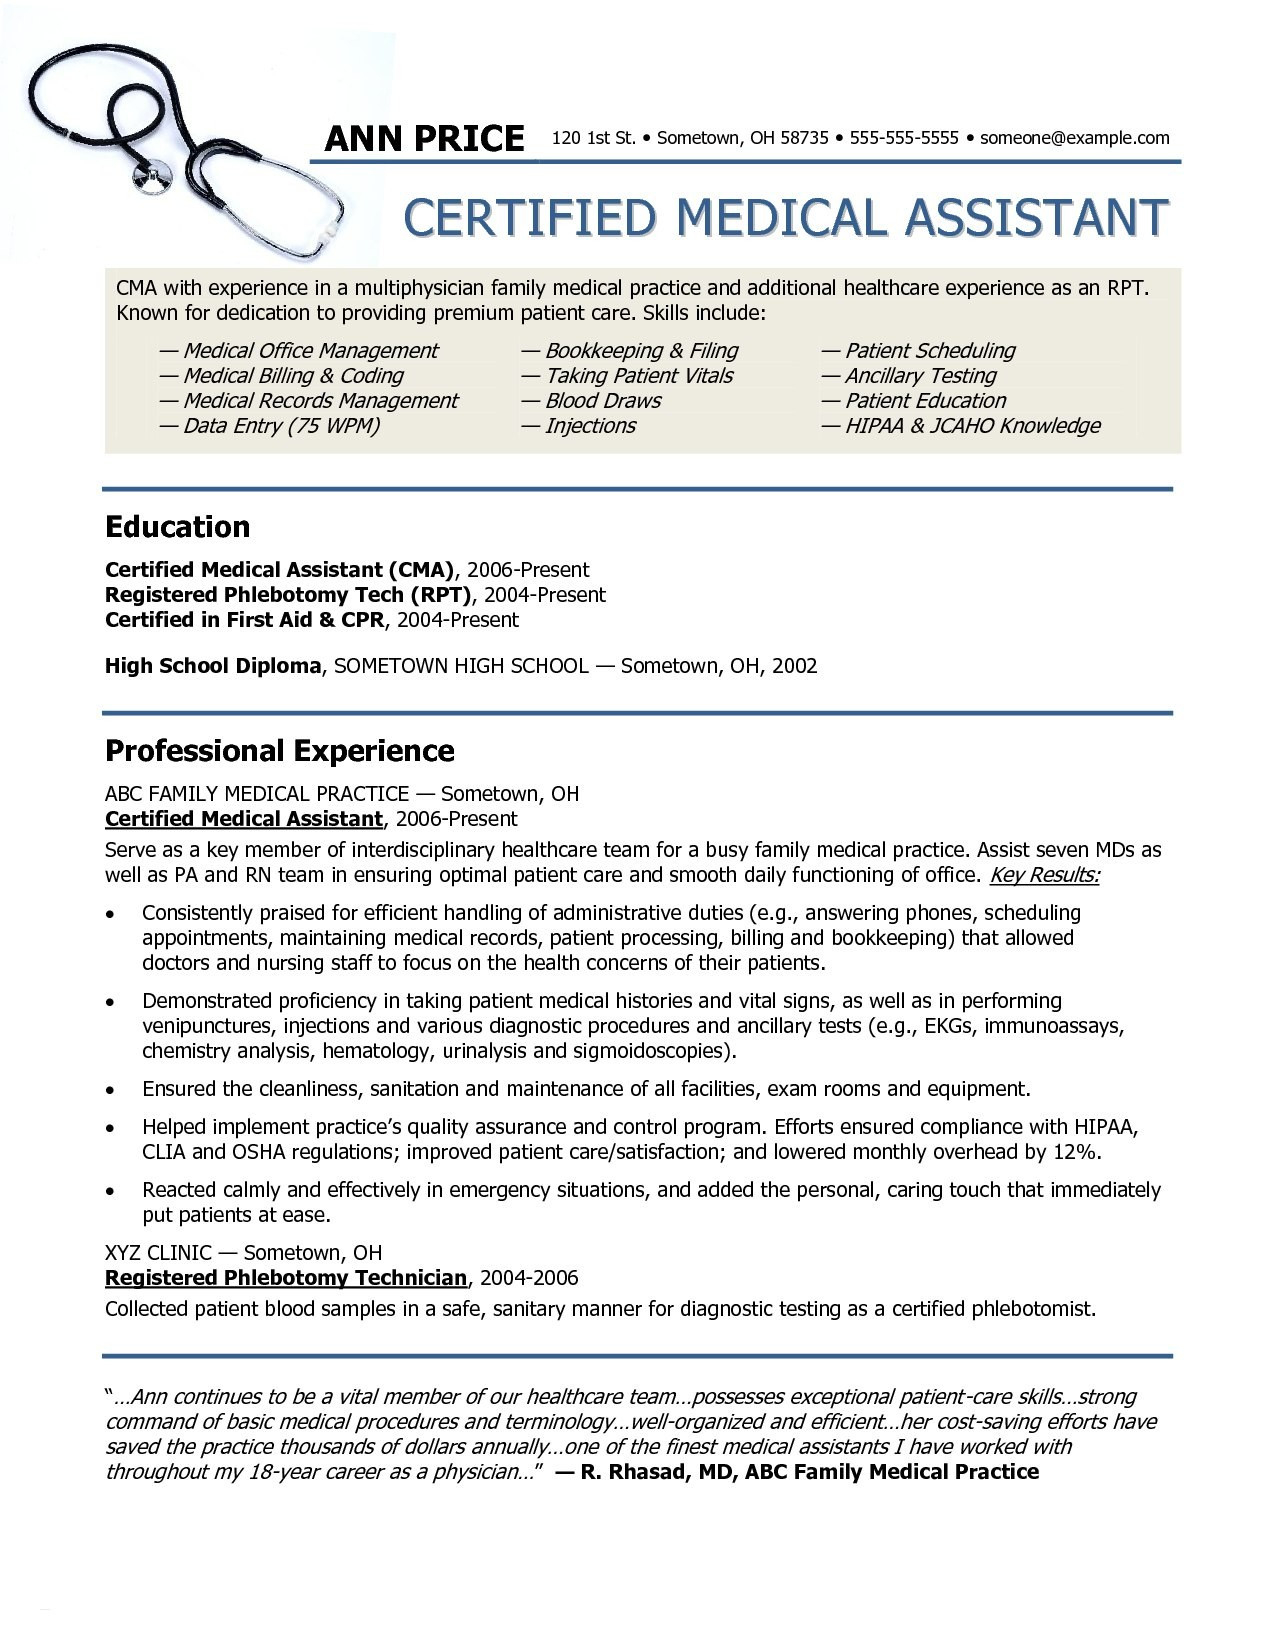 Medical assistant Resume Examples - Medical assistant Resume Unique Medical assistant Resumes New